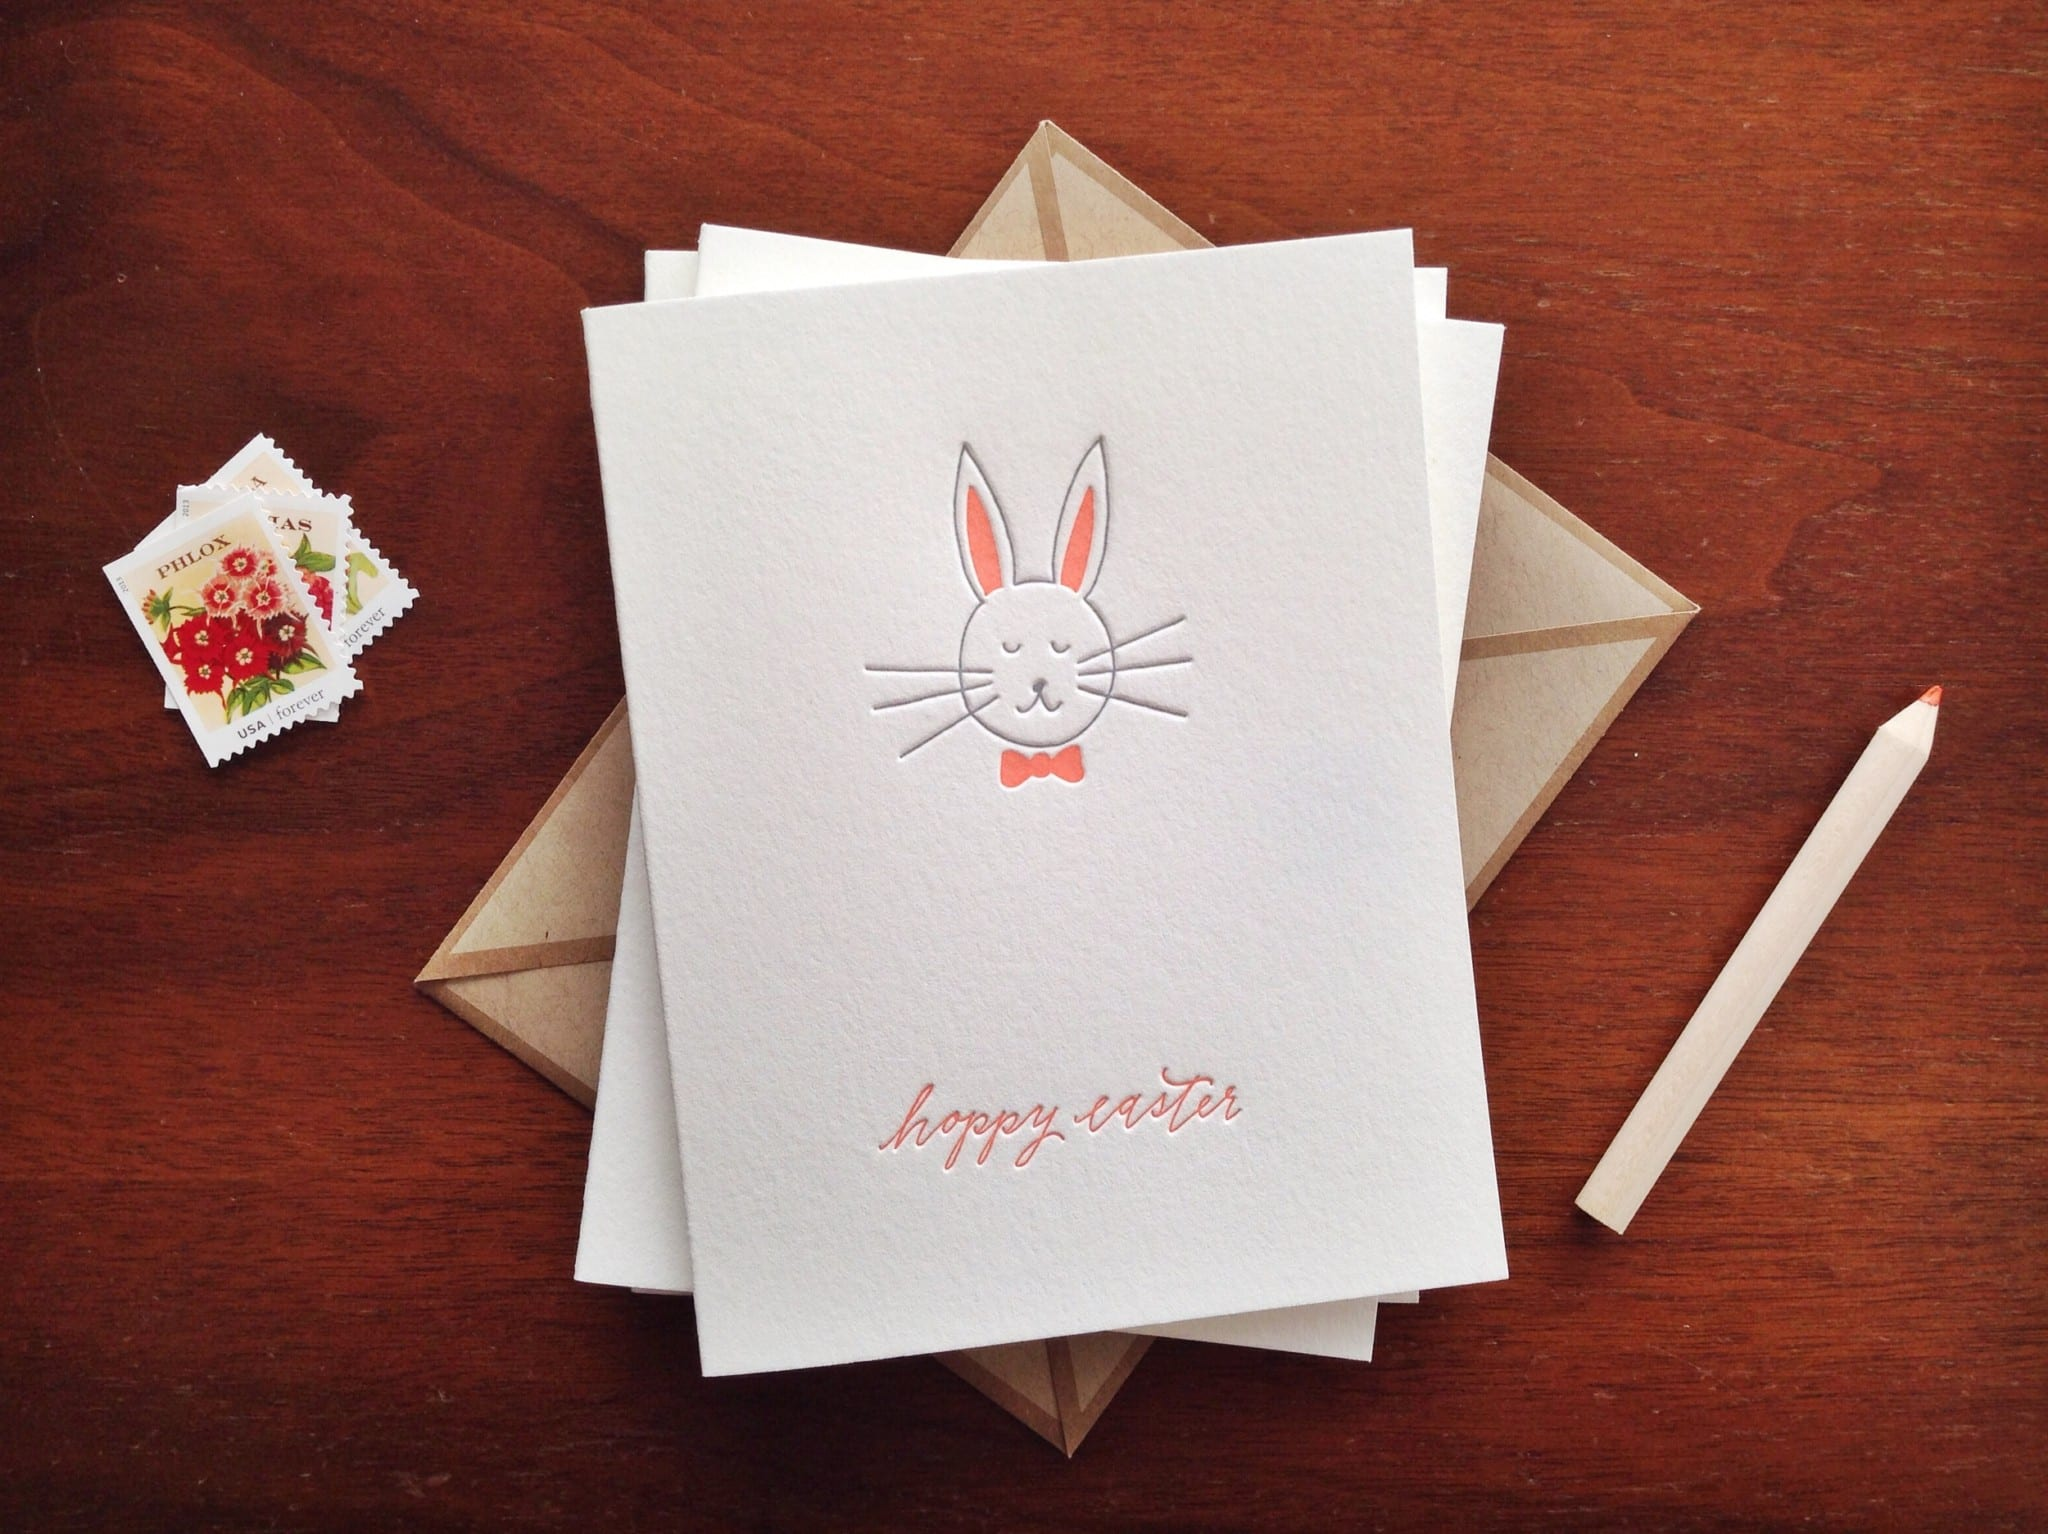 IMP-4003-S - Hoppy Easter Letterpress Card Set | INK MEETS PAPER